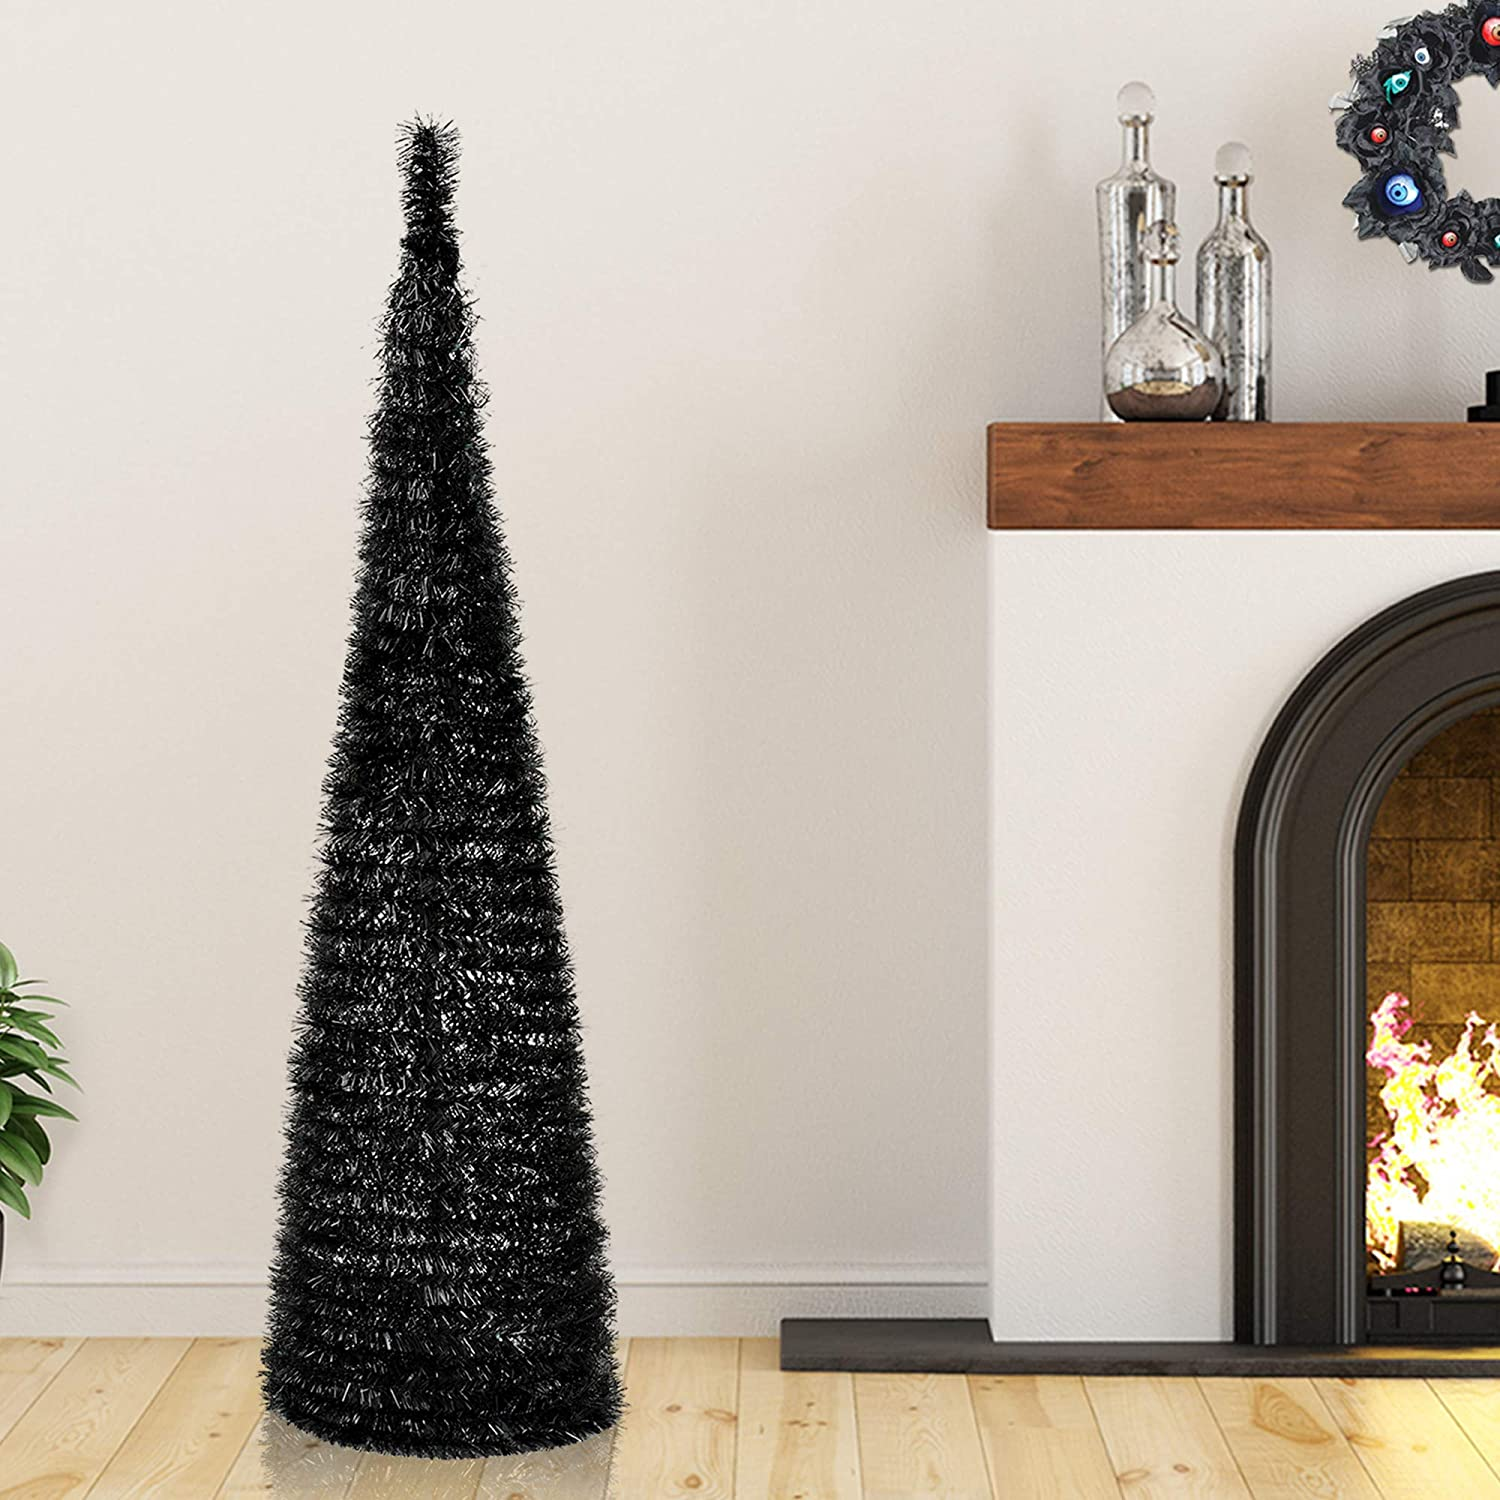 YuQi 5 Black and Orange Tinsel Pop-Up Artificial Christmas Tree,Collapsible Pencil Christmas Trees Features Sequins Accents for Apartments,Dorm Rooms,Fireplace or Party